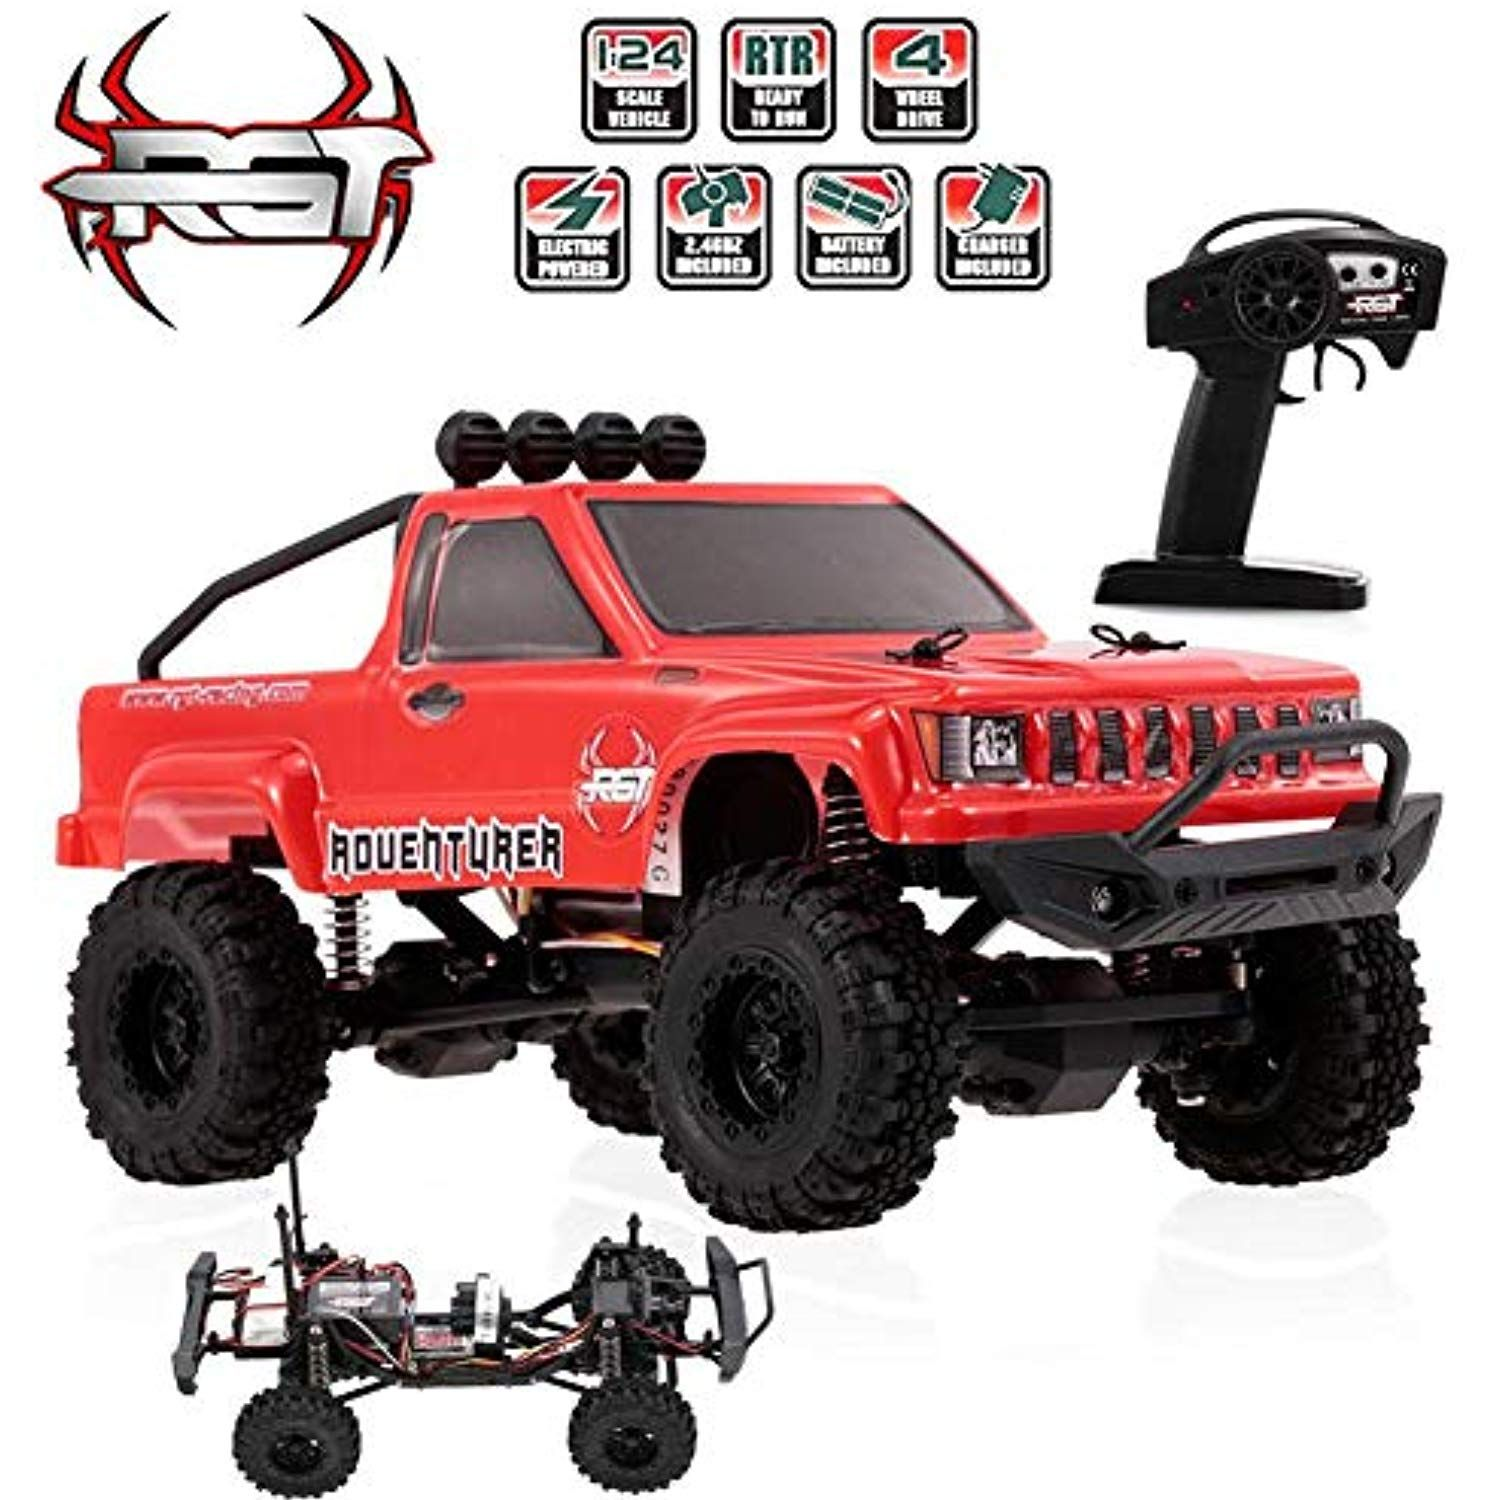 Vovi Jeep Epic Truck Rc Car Toy For Kids Ford Raptor F 150 Red